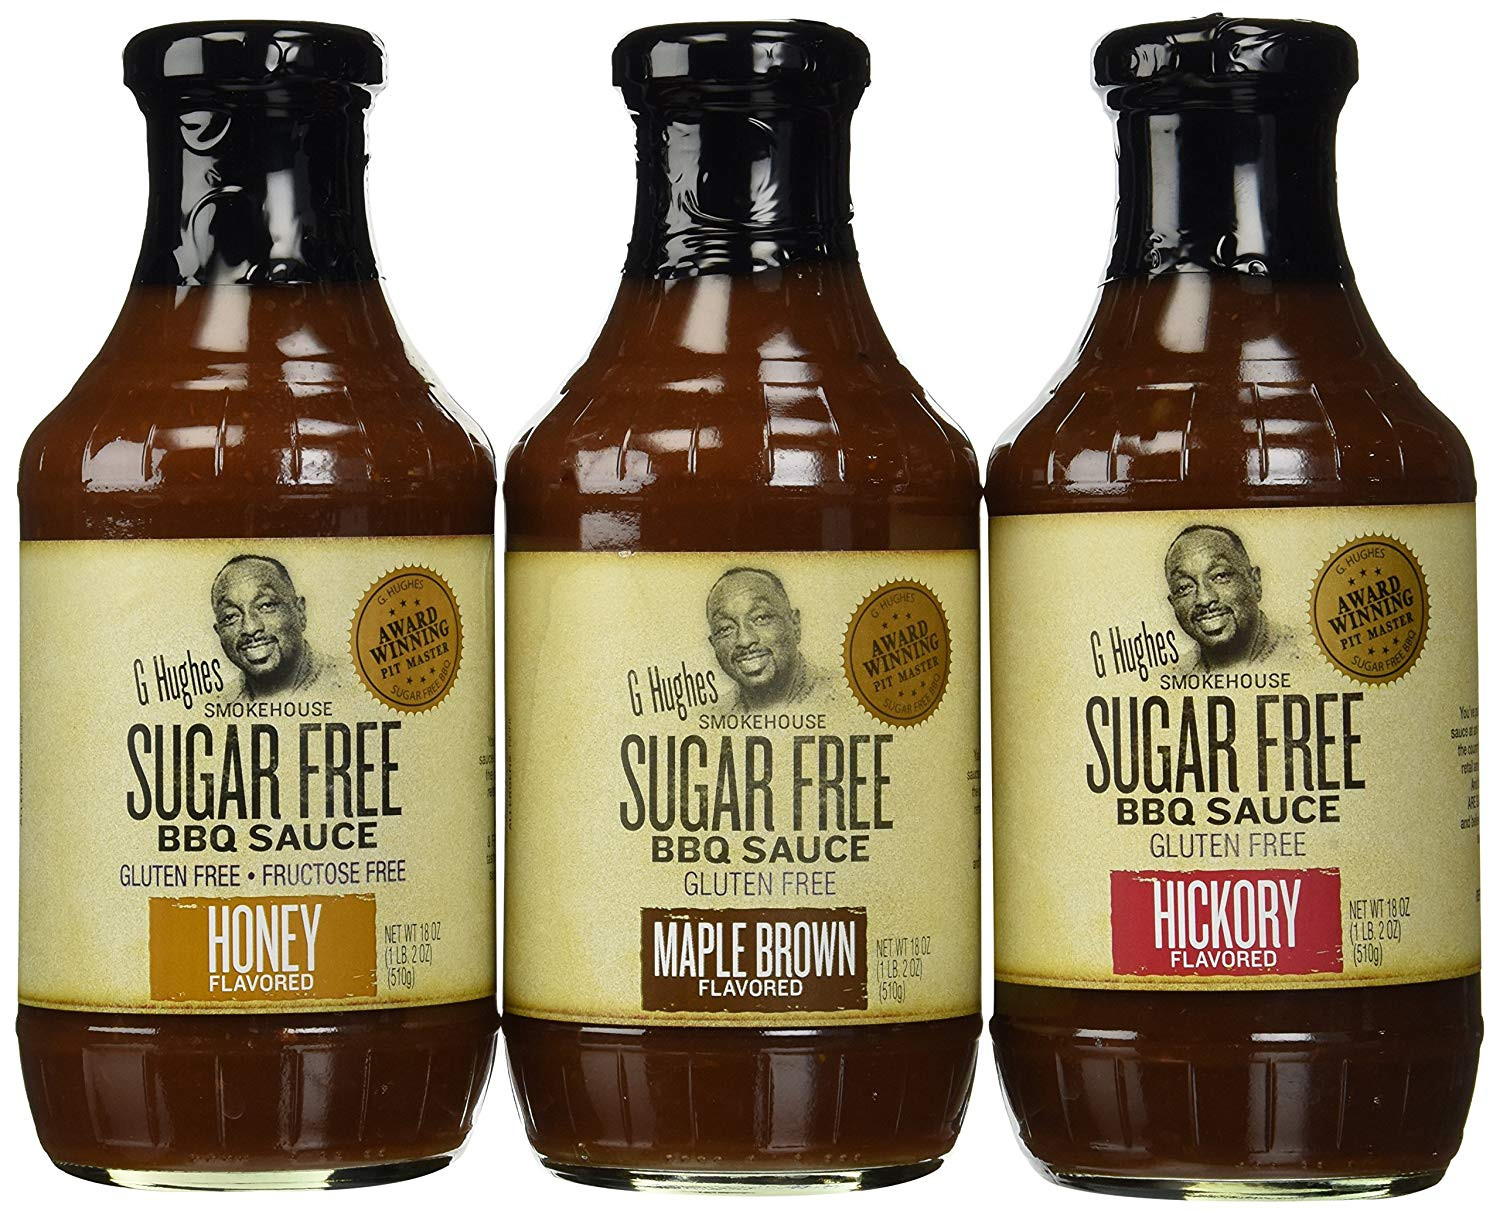 Low Carb Bbq Sauce Brands  low sugar bbq sauce brands